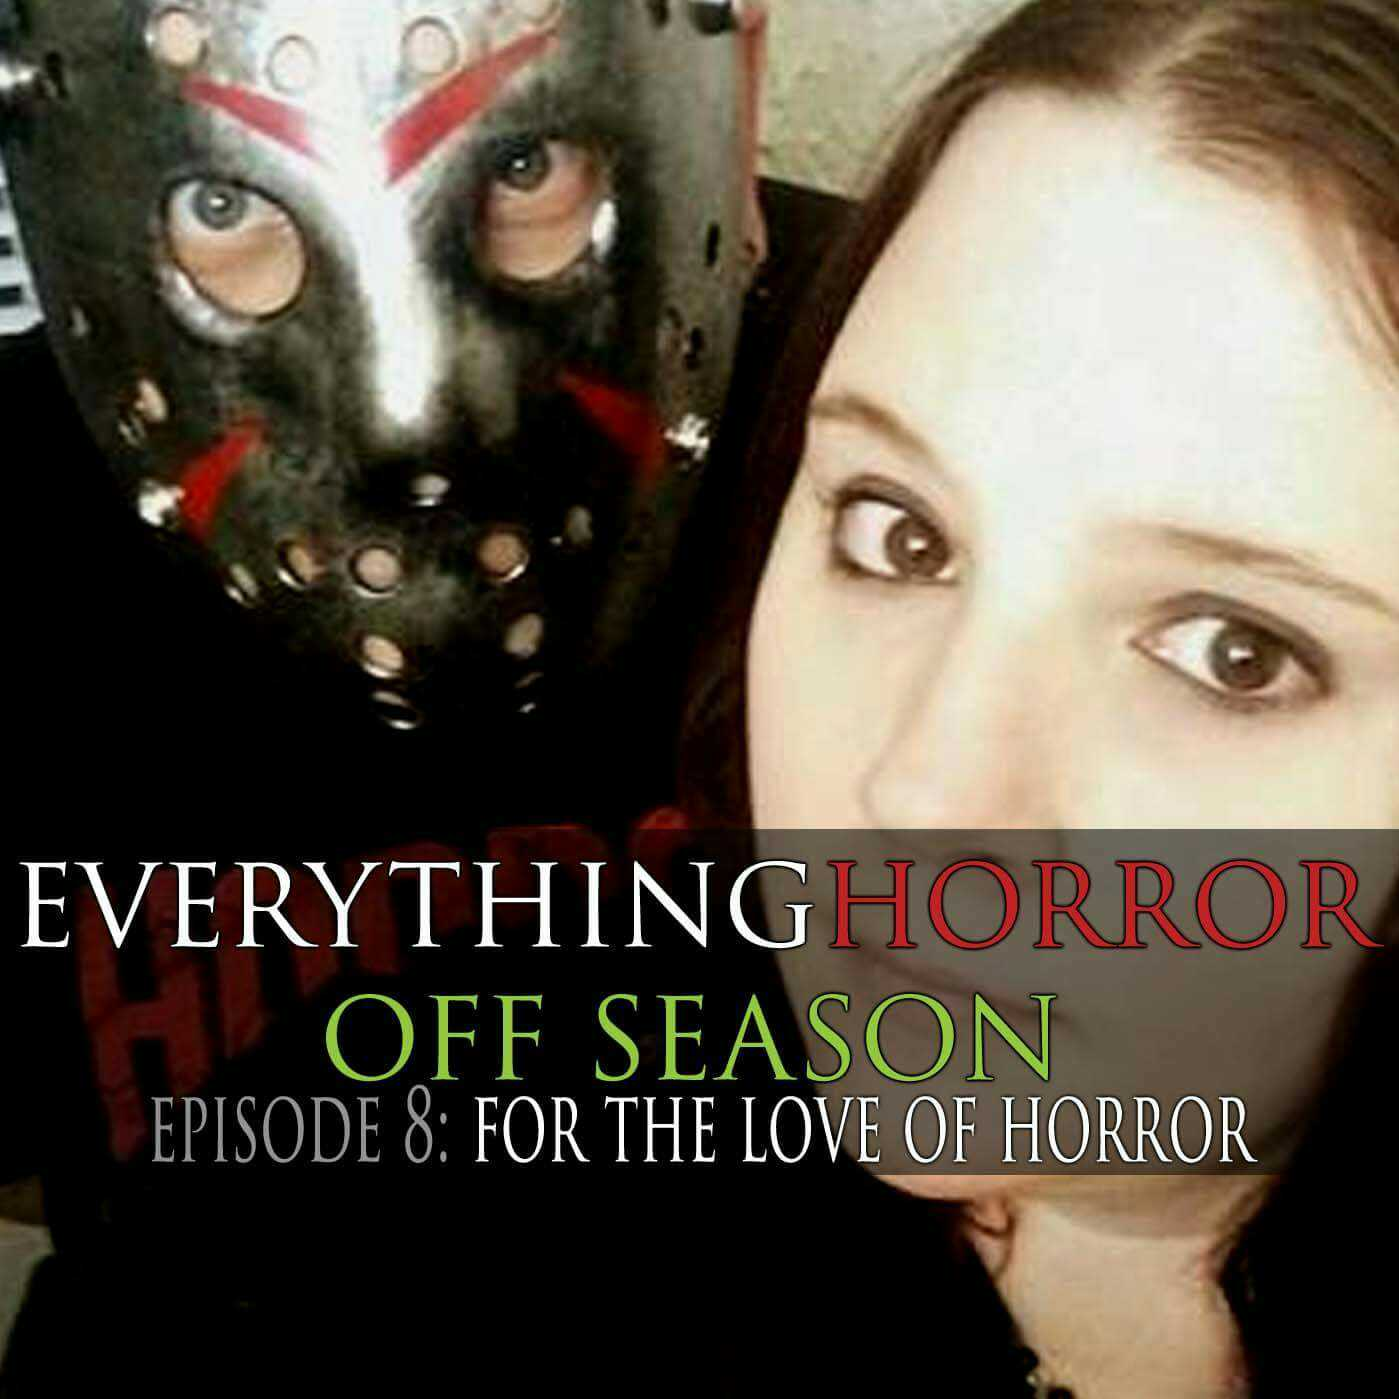 Off Season: Episode 8 - For the Love of Horror